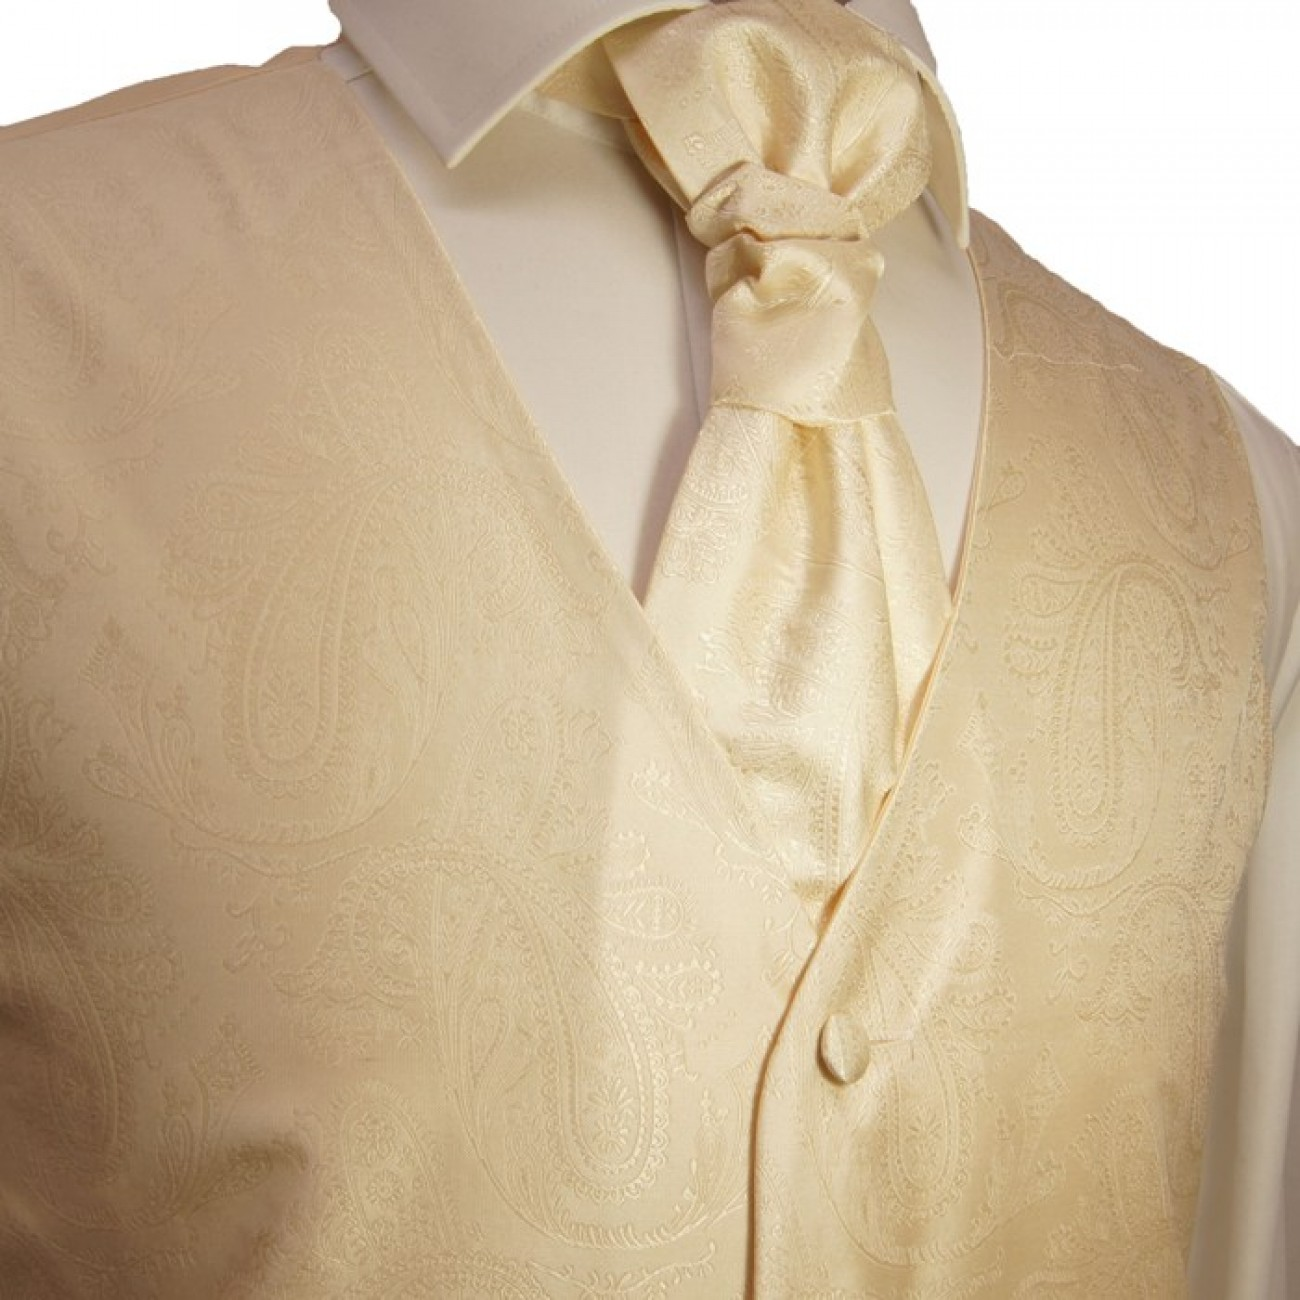 Cream waistcoat for wedding with necktie ascot tie pocket square and cufflinks v27